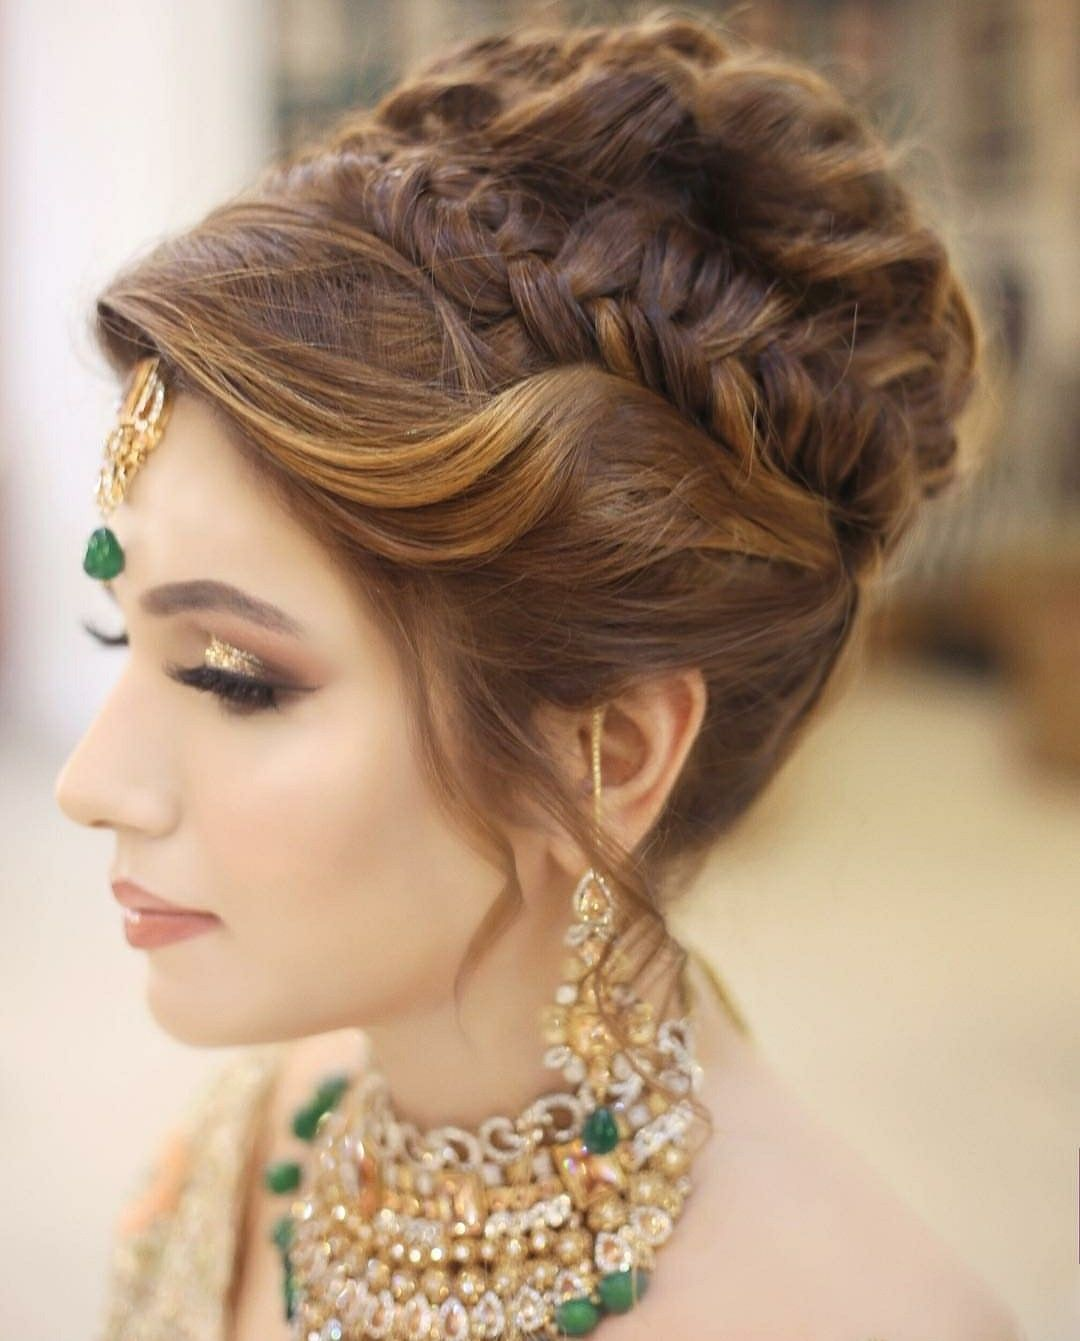 Pakistani Hairstyles For Medium Hair - Wavy Haircut